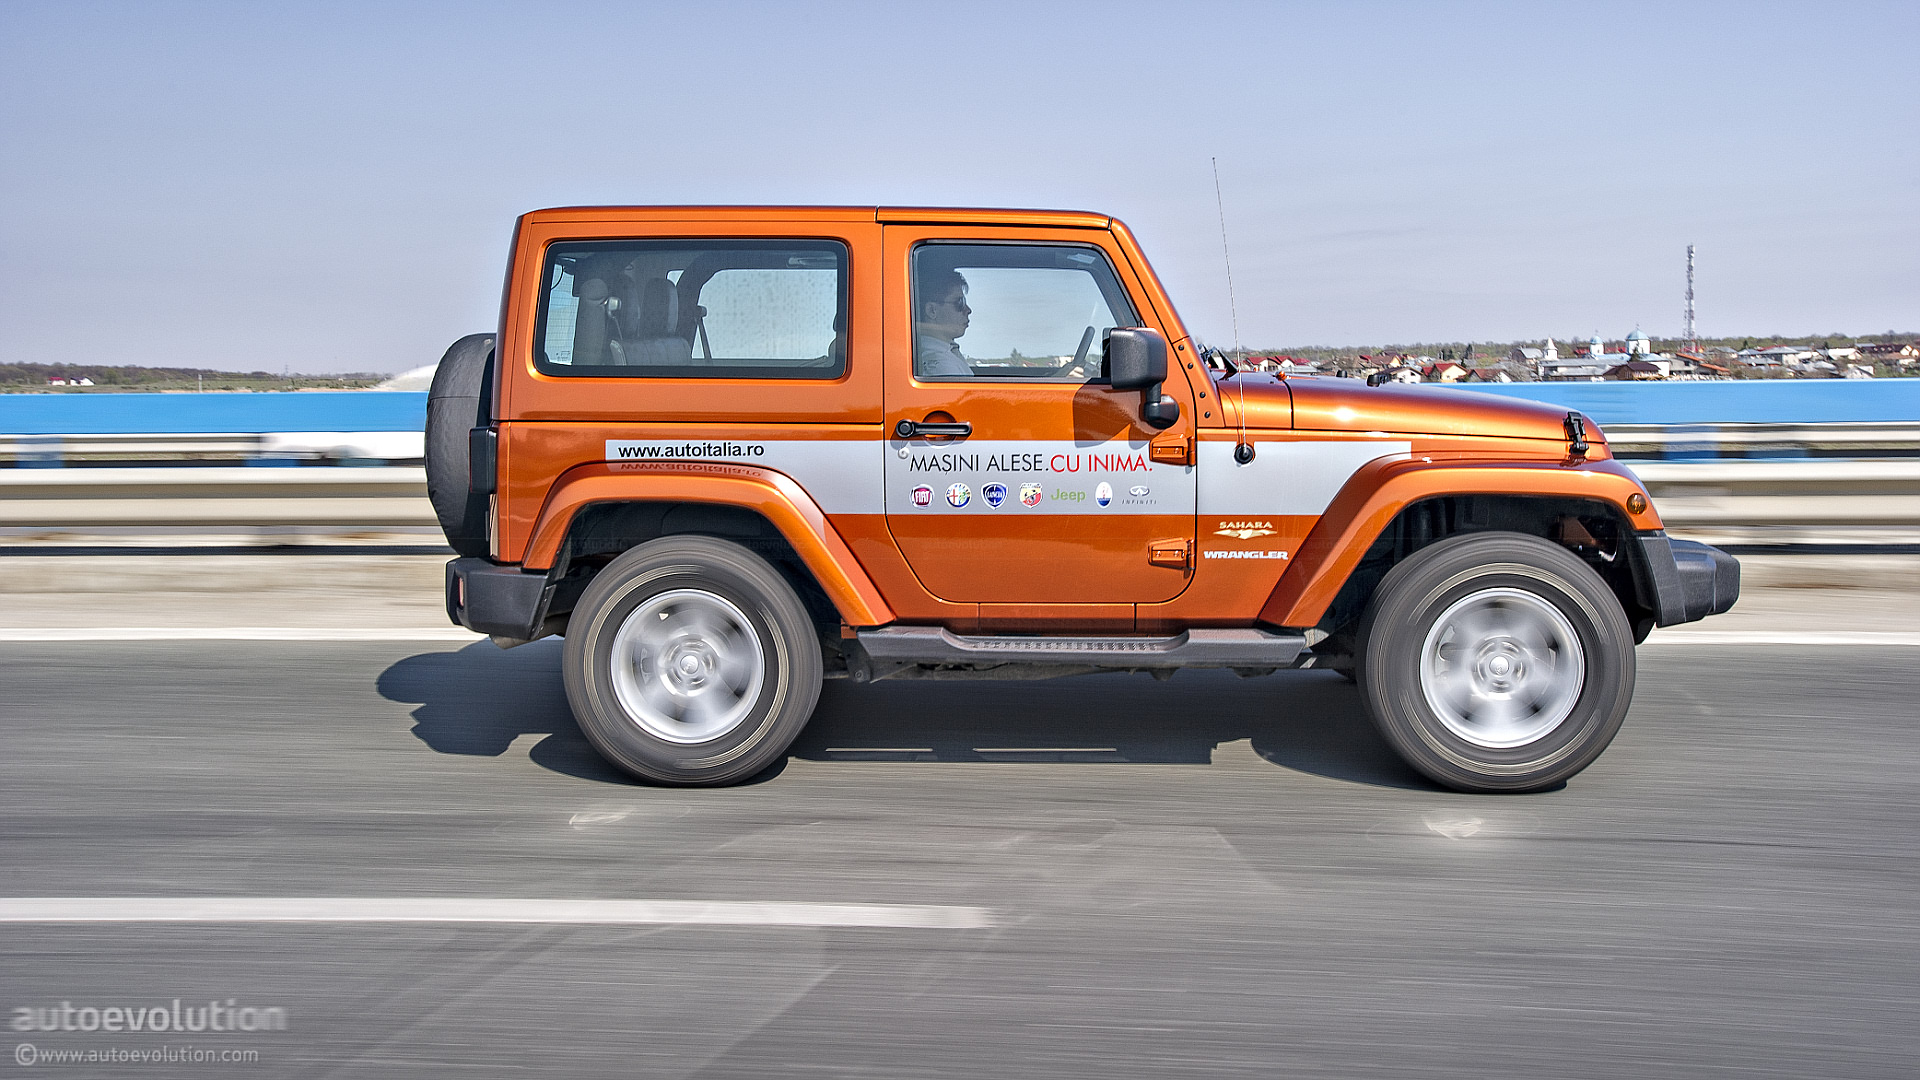 jeep wrangler review: